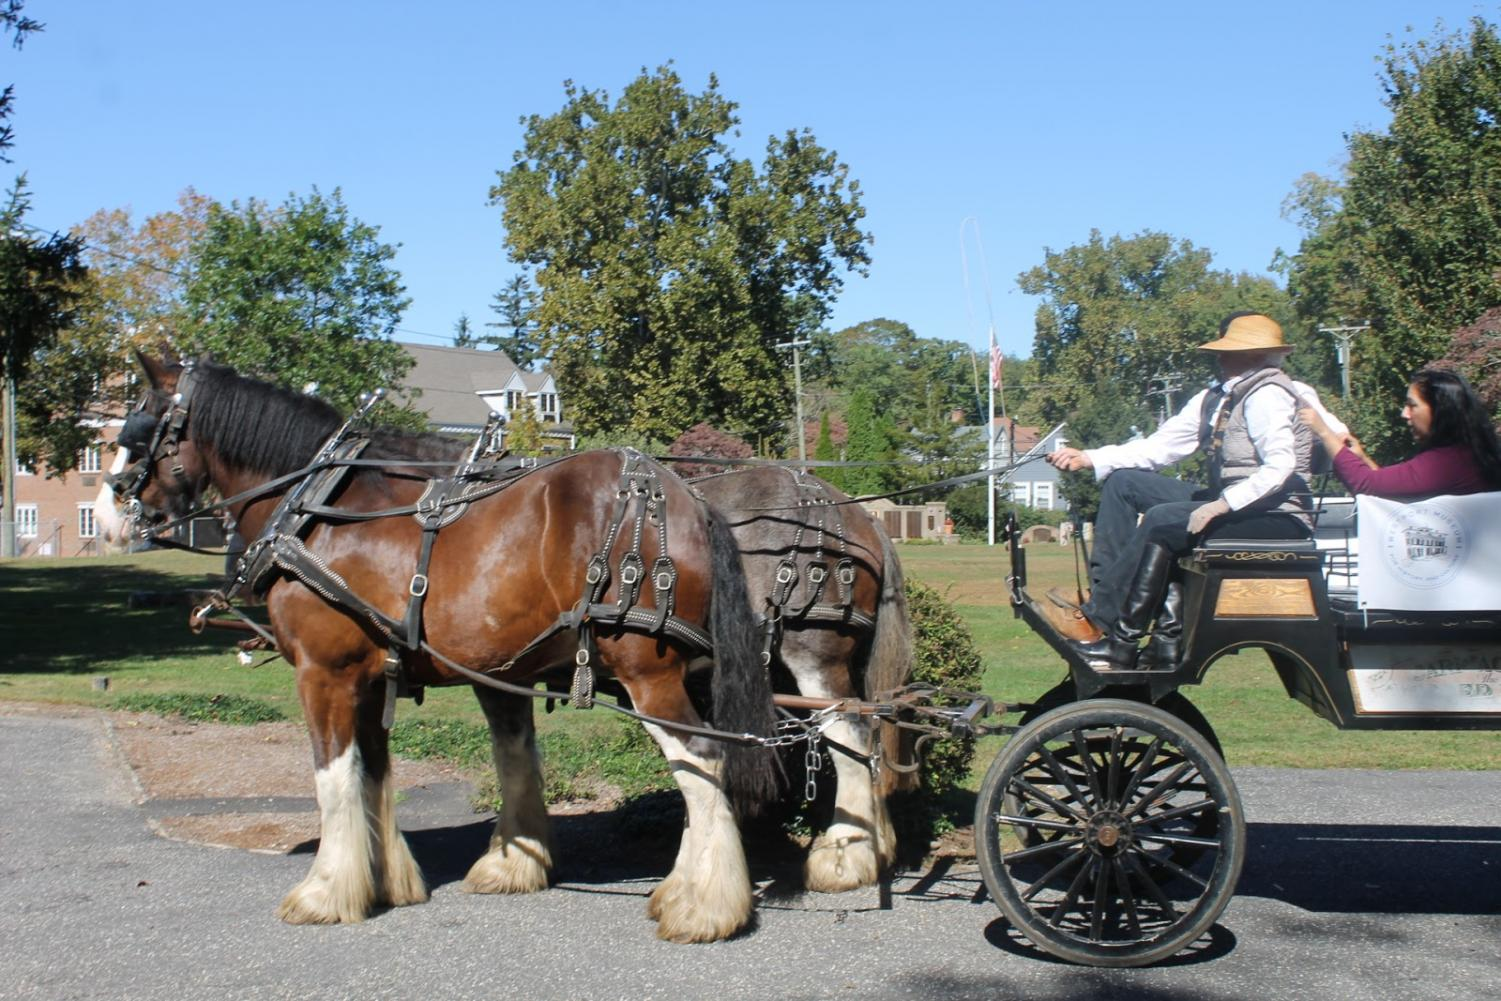 A horse carriage arrives at the Westport Historical Society for the Family Creep Fest, which offers families hayrides throughout downtown. Photo by Anastasia Thumser '22.